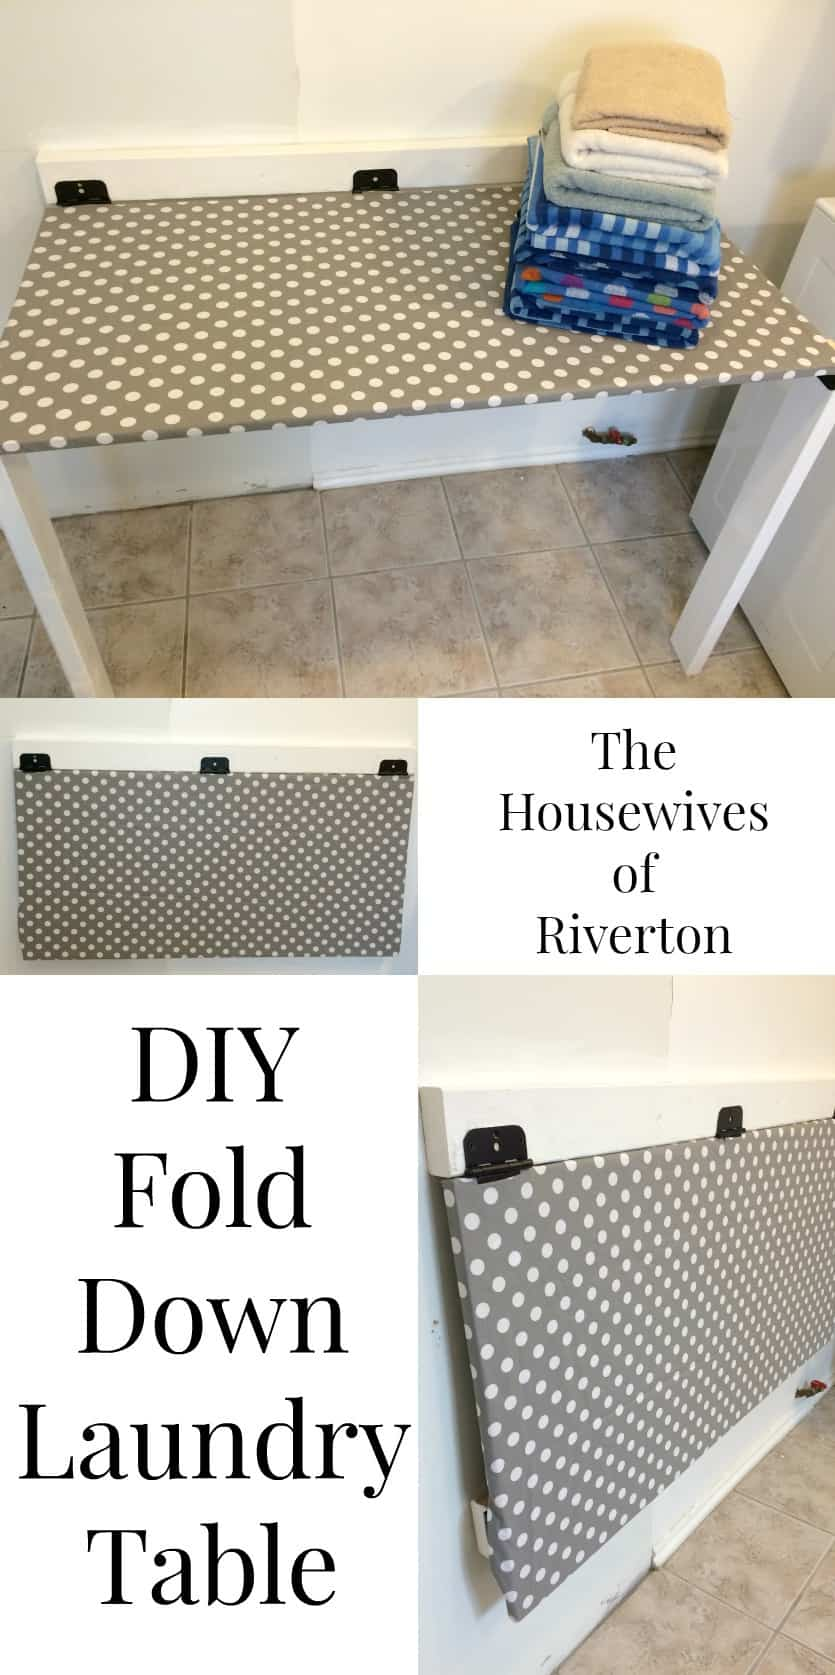 DIY Drop Down Laundry Table